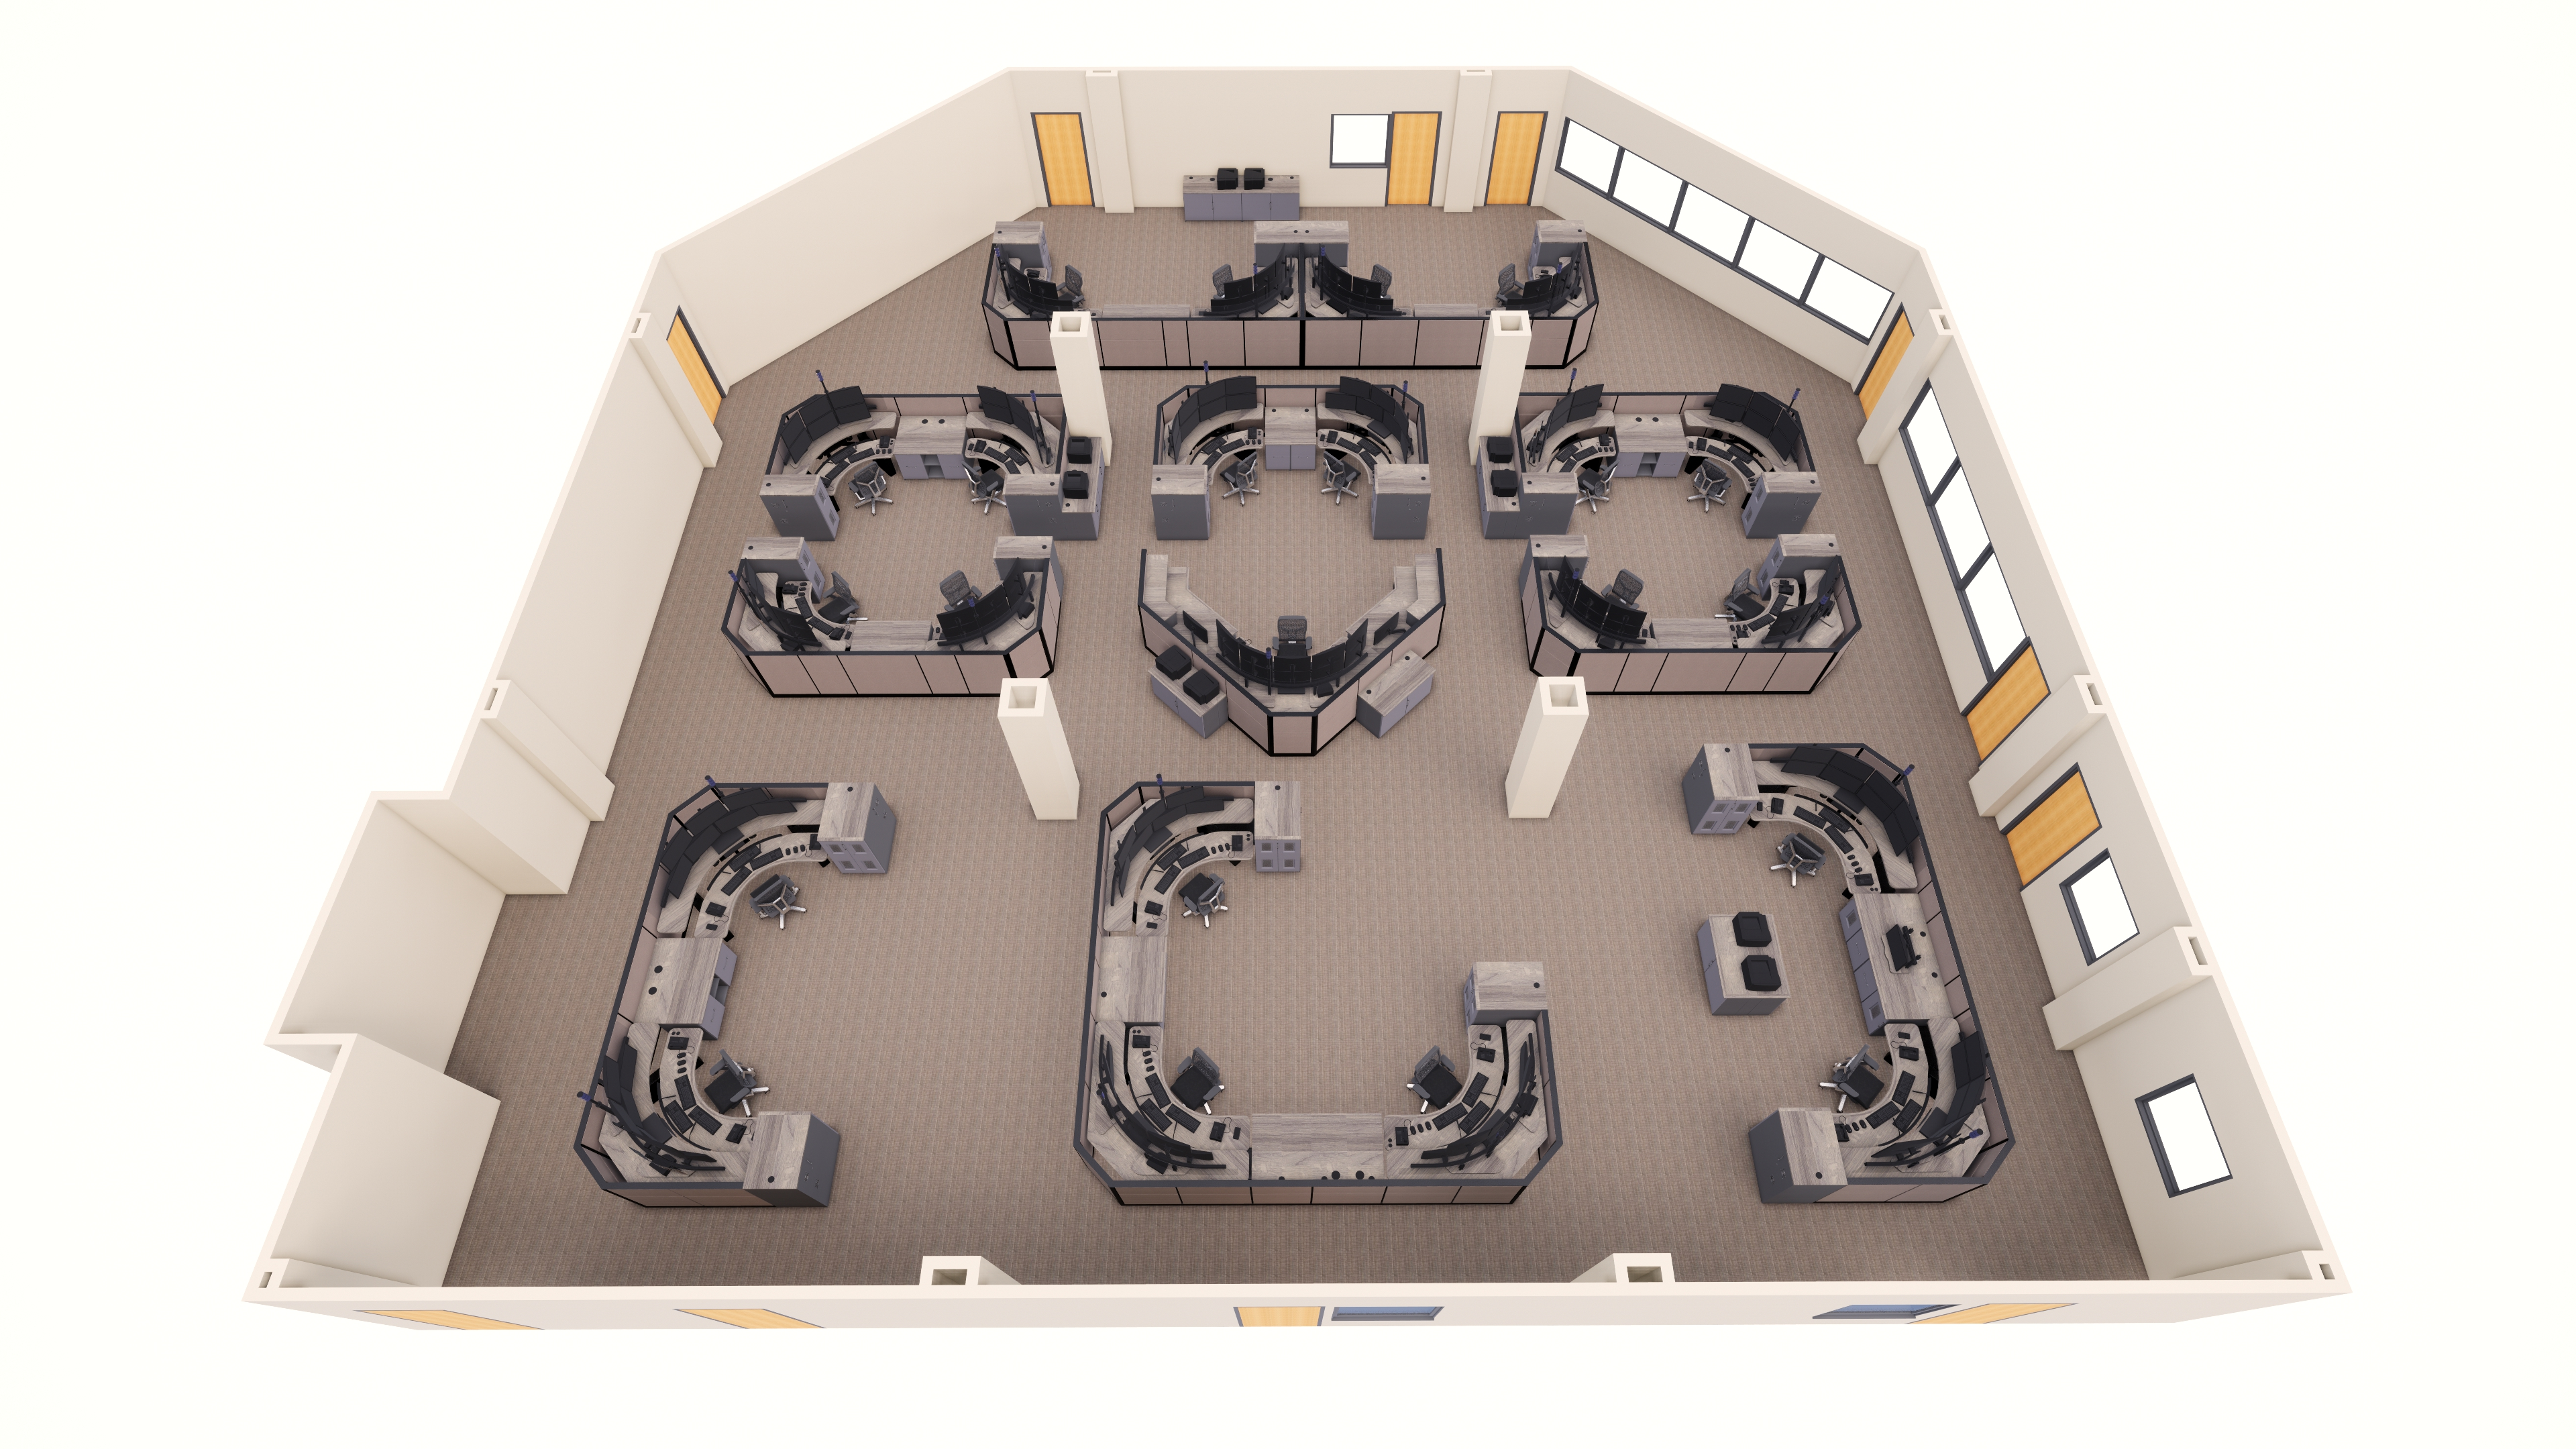 Chester County 911 Room Rendering Space Planning Design